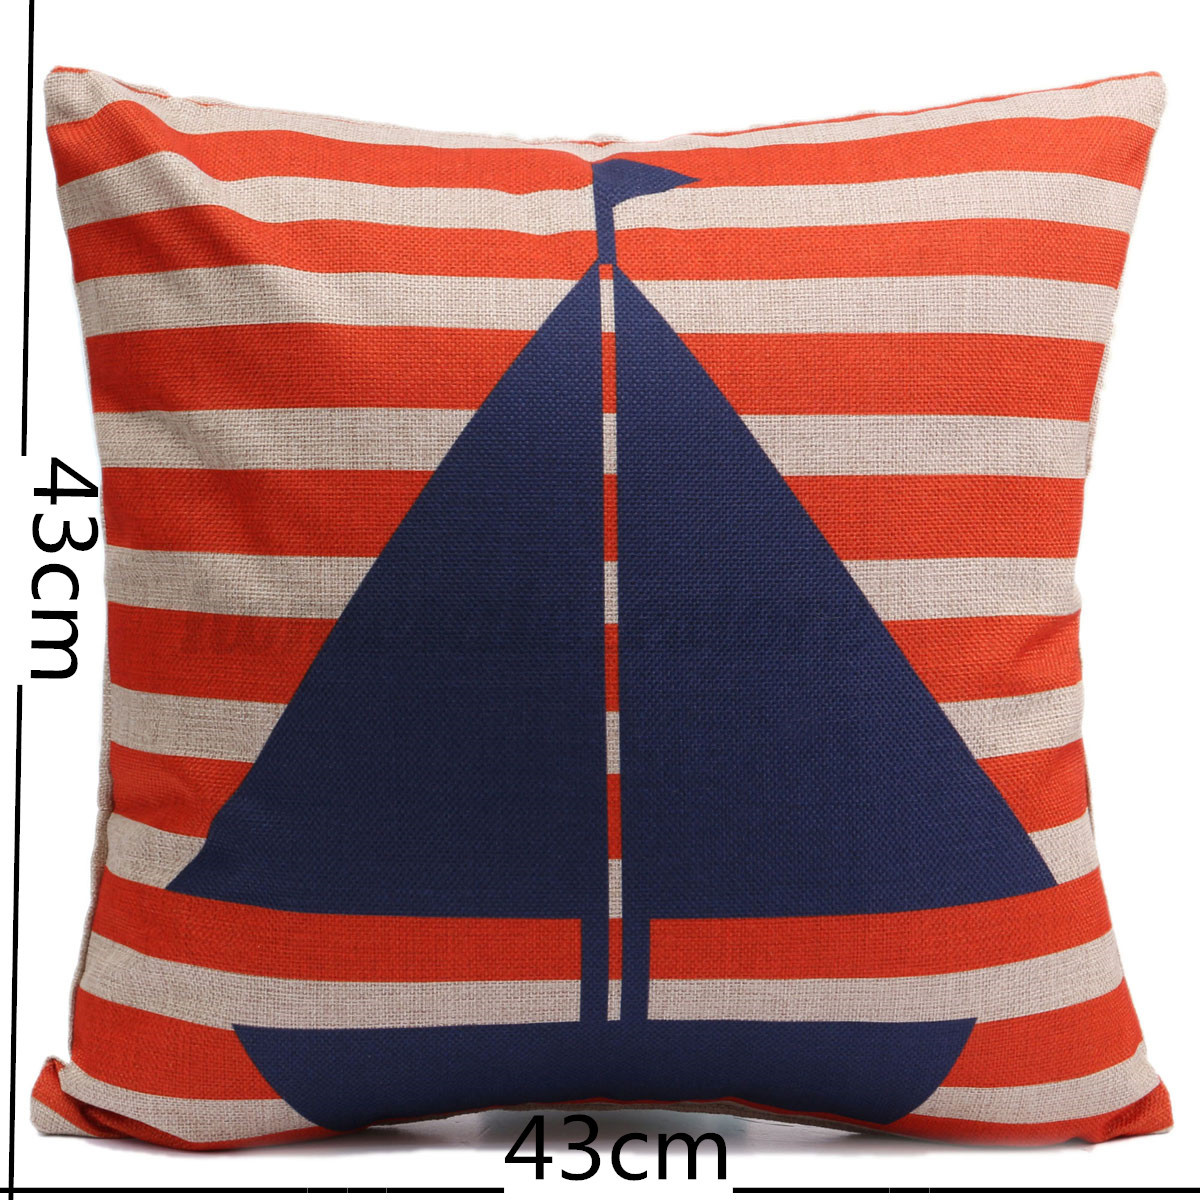 Sailing Boat Series Print Cushion Cover Sofa Home Decor Cotton Linen Pillow Case eBay